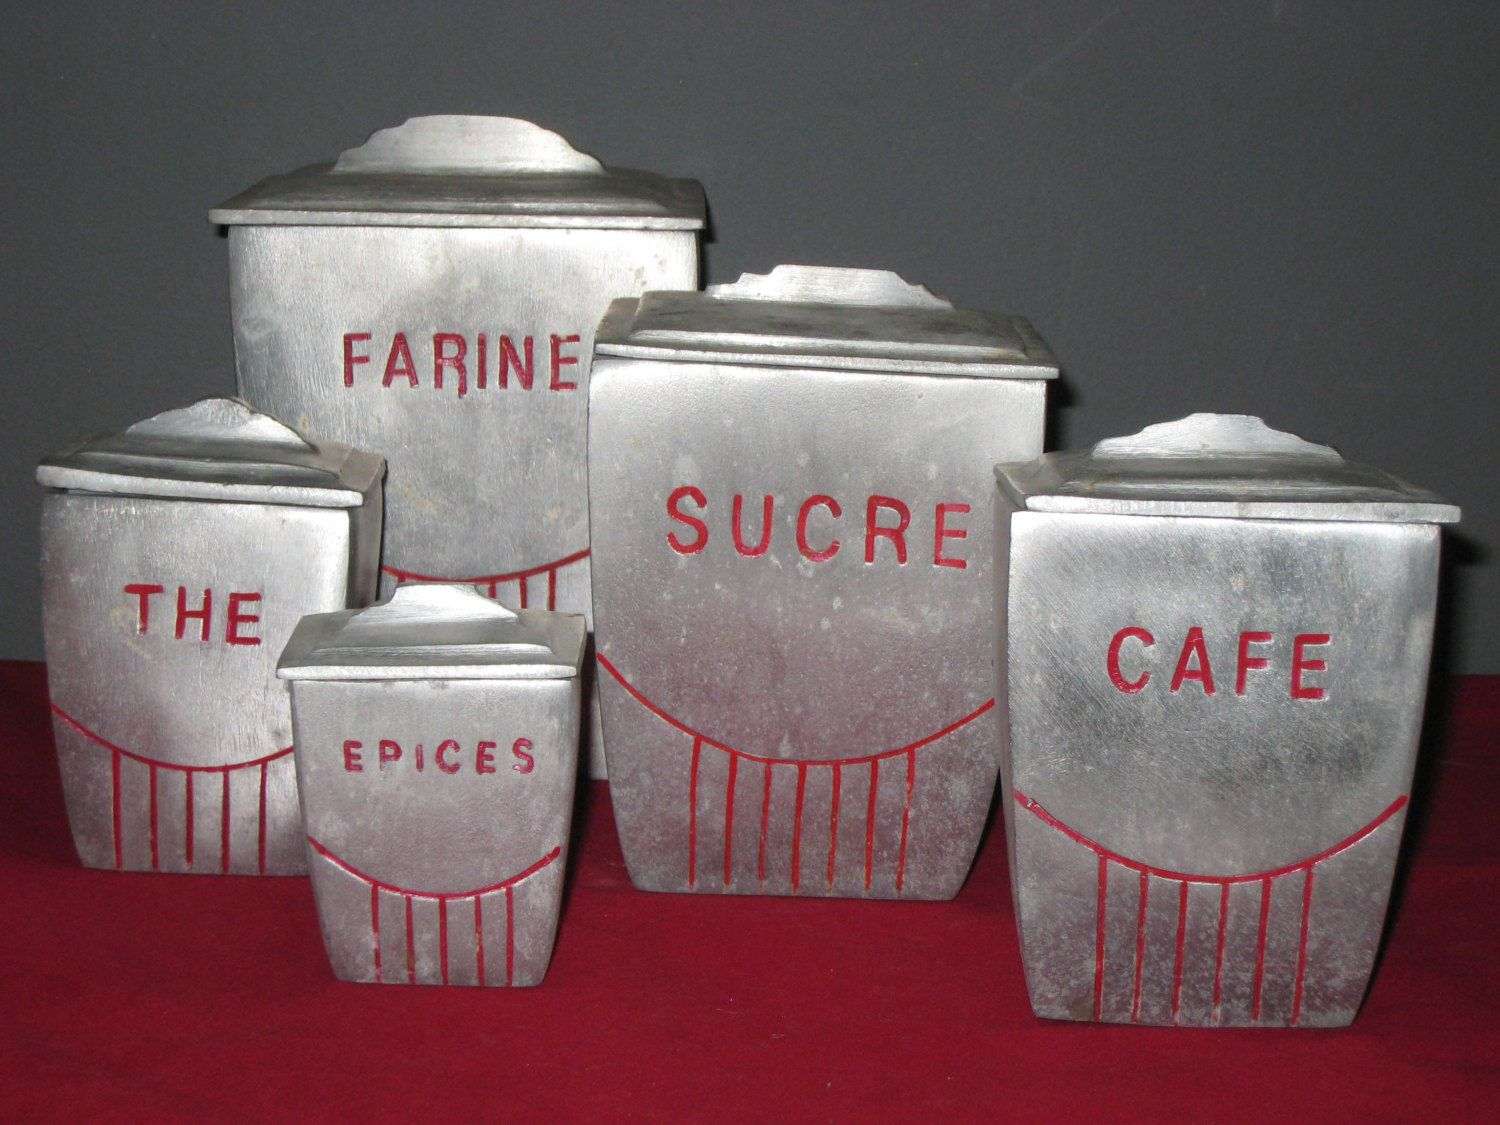 French Metal Canister Set Rare Art Deco Heavy Cast Aluminum Gratuated Canister Set Antique Vintage French Metal Canister Metal Canisters Canister Sets Rare Set